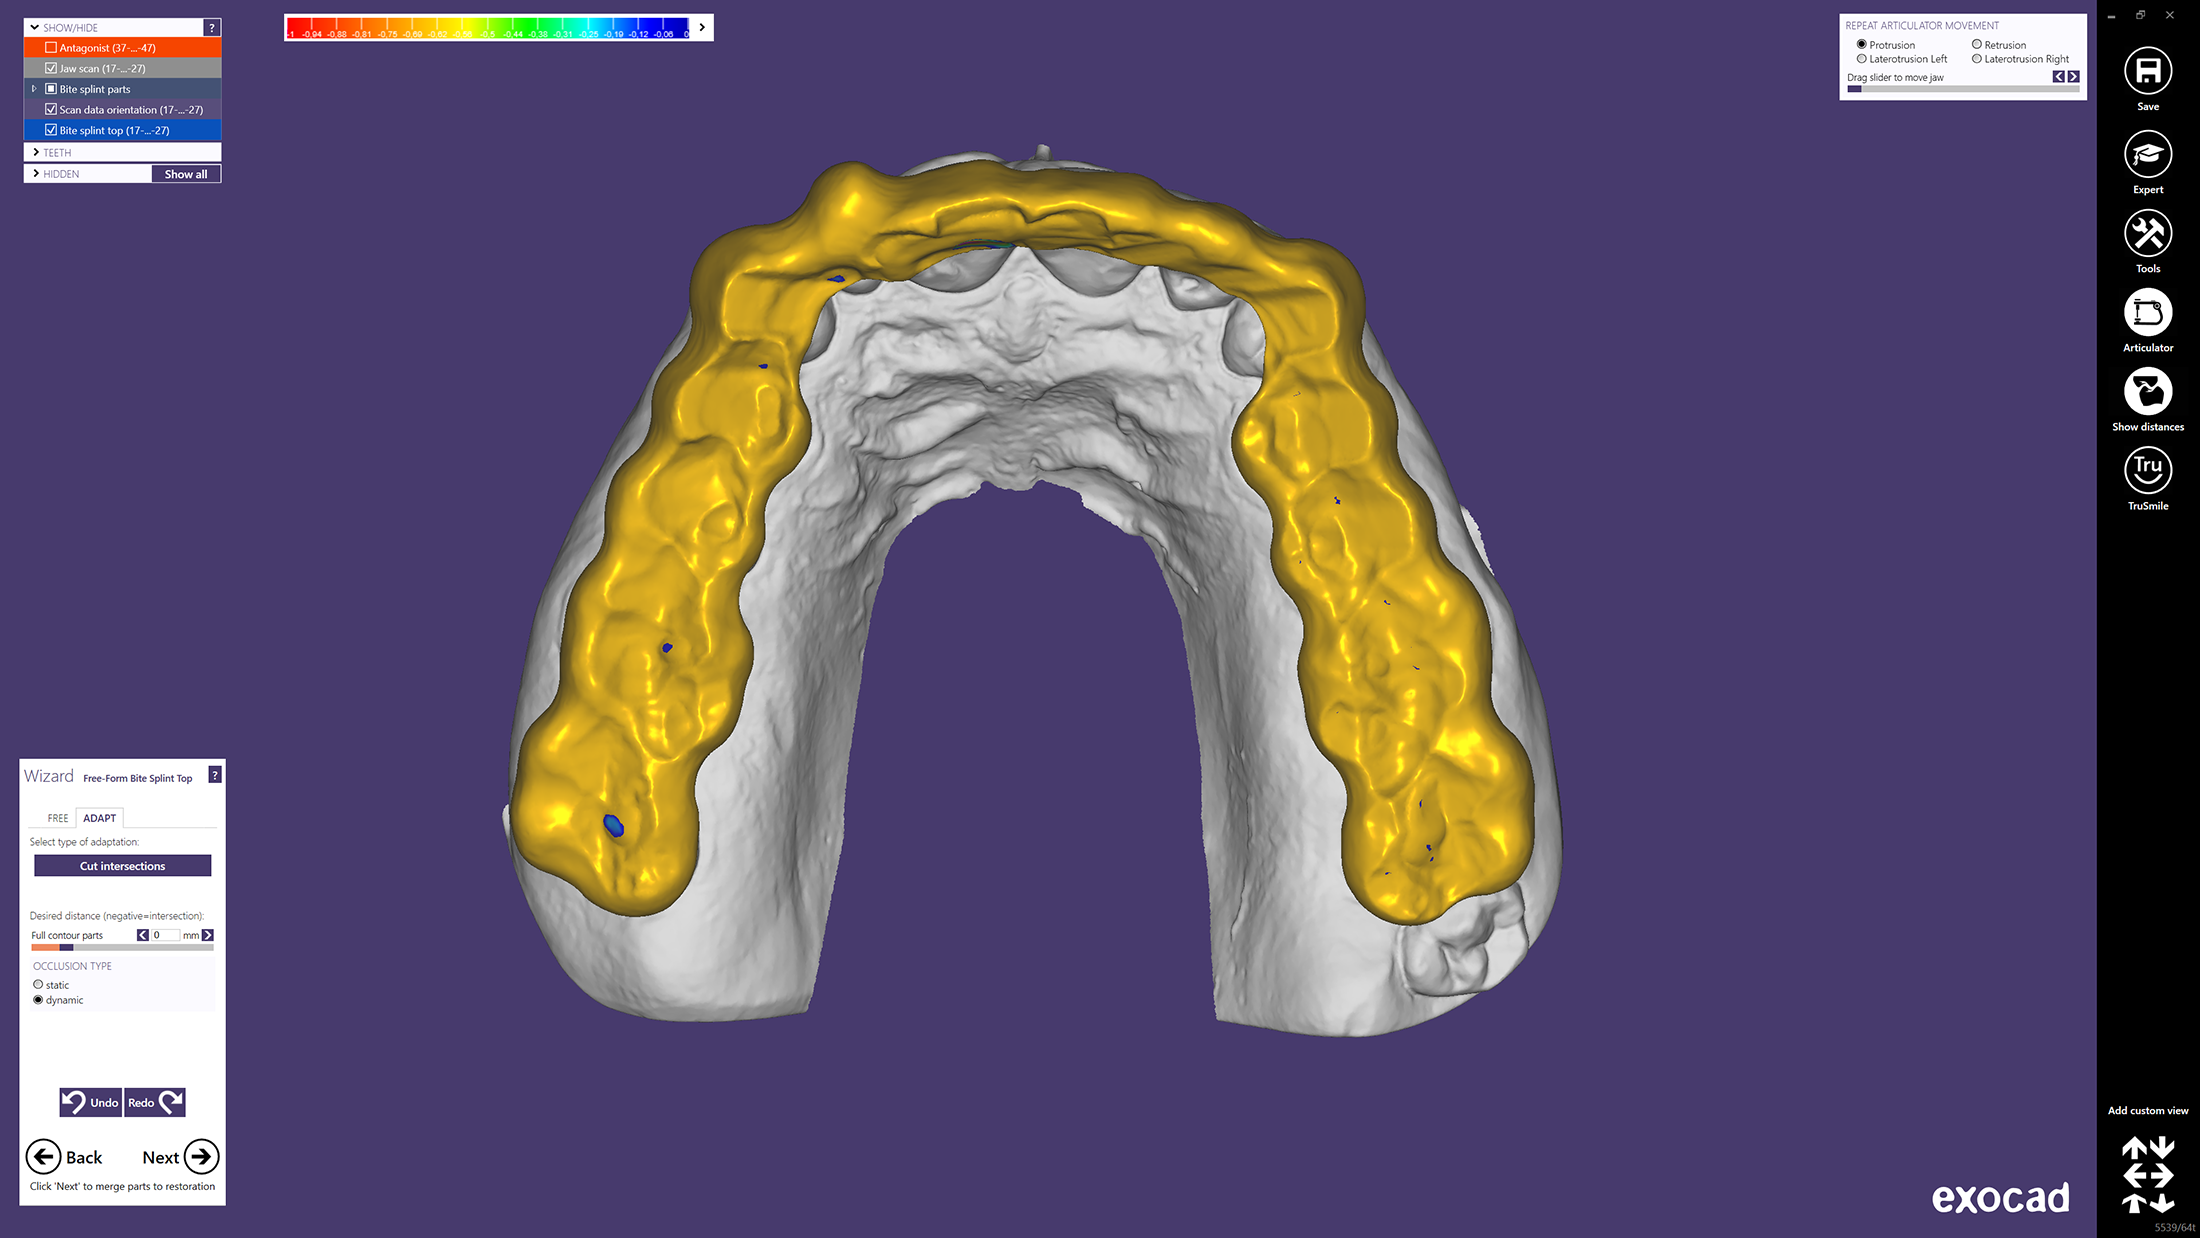 CAD design of a bite splint in exocad software